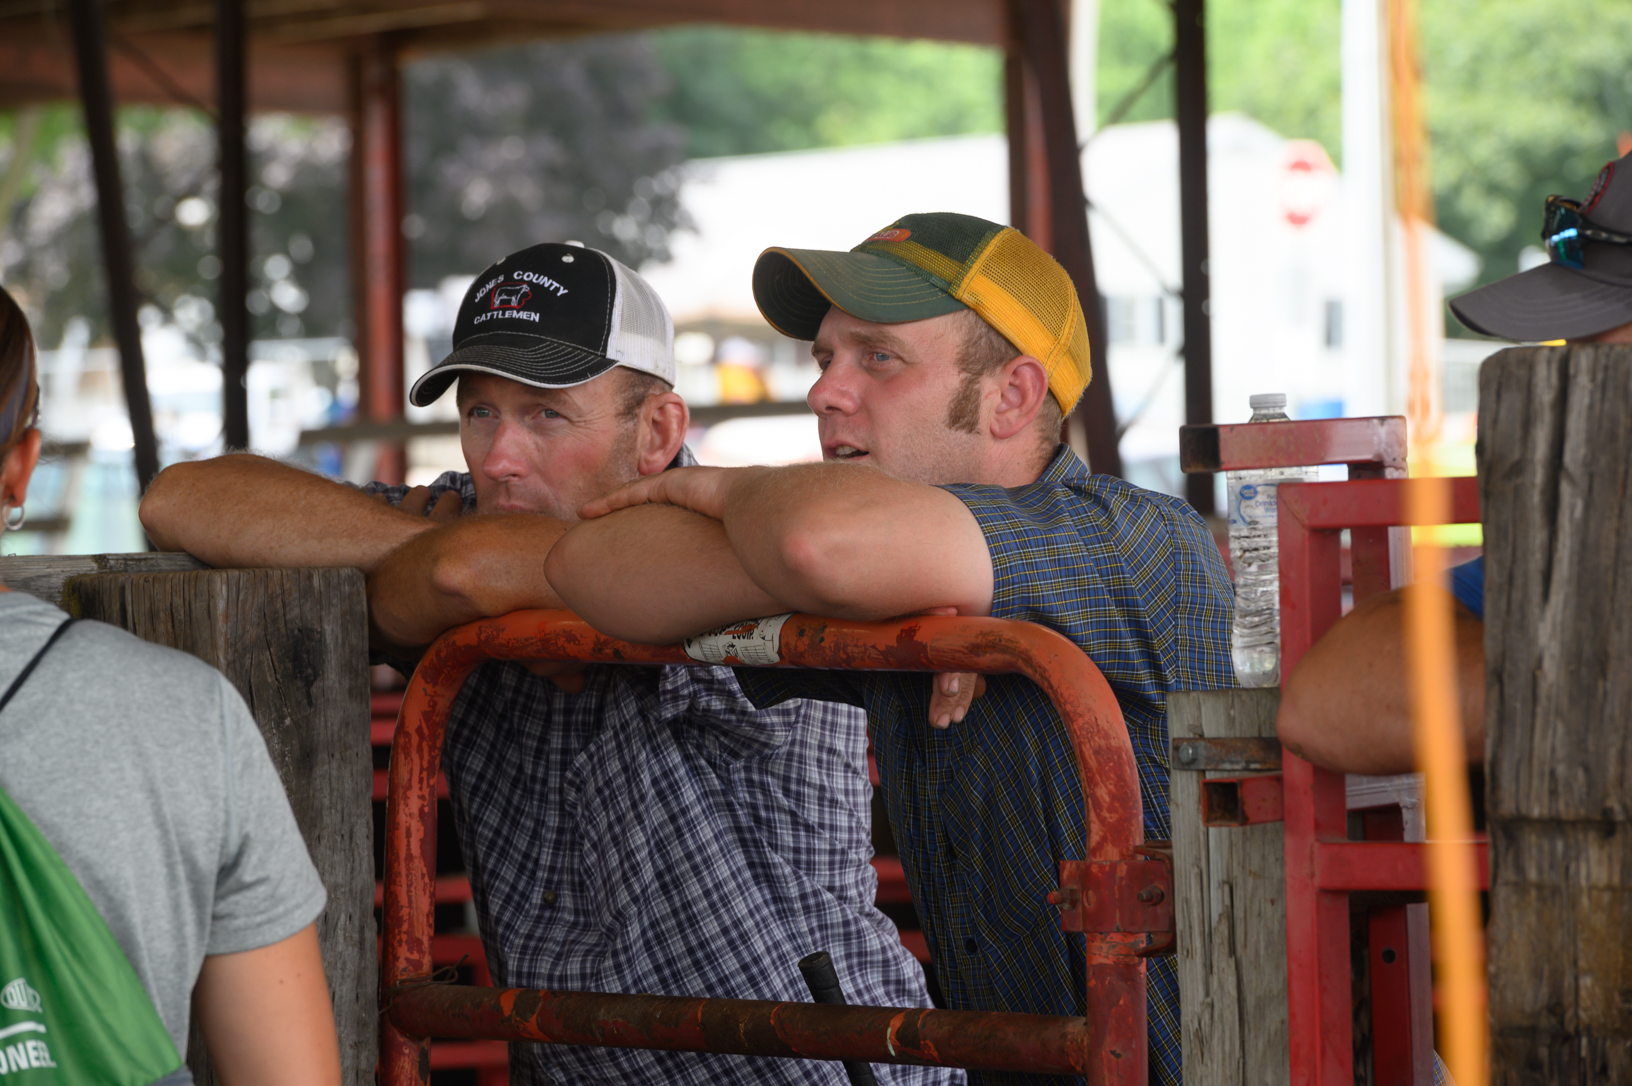 Josh Smith and Mike Lynch, both of Cascade, watch as livestock are checked-in for the Jones County Fair in Monticello. Photo credit: Joseph L. Murphy/Iowa Soybean Association